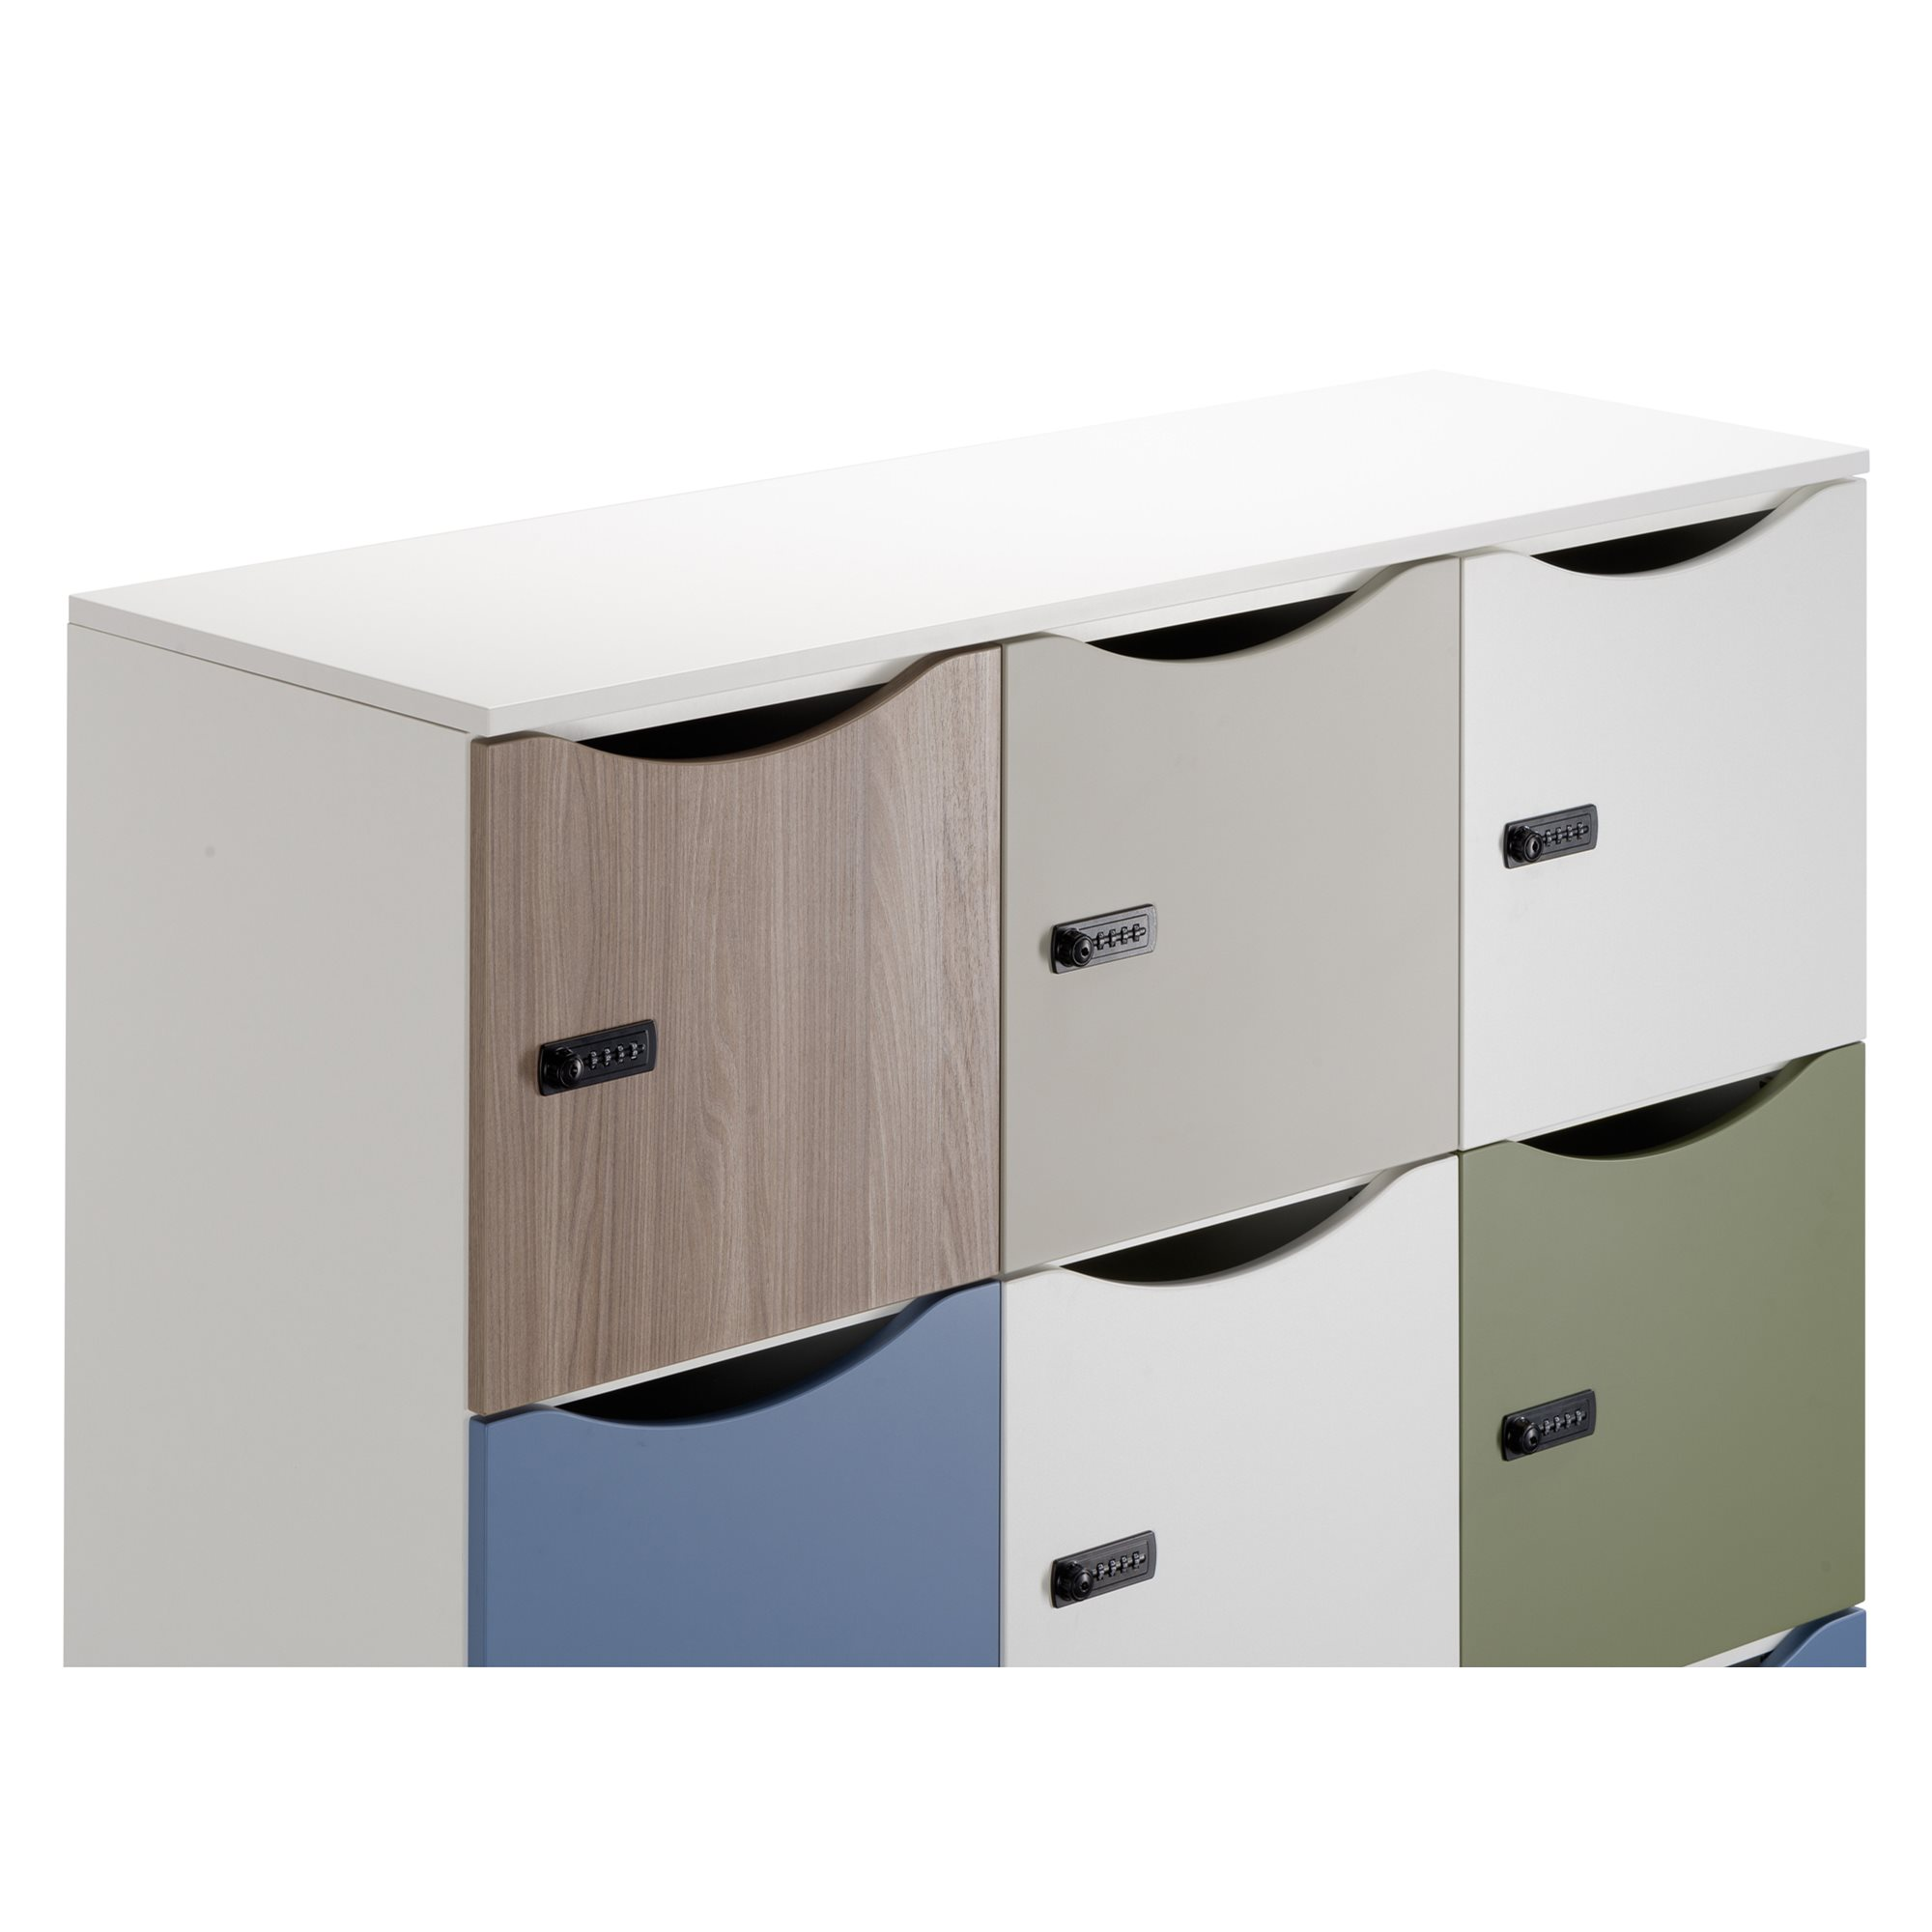 Finishing plate for 3 column-shaped lockers - W 129 cm